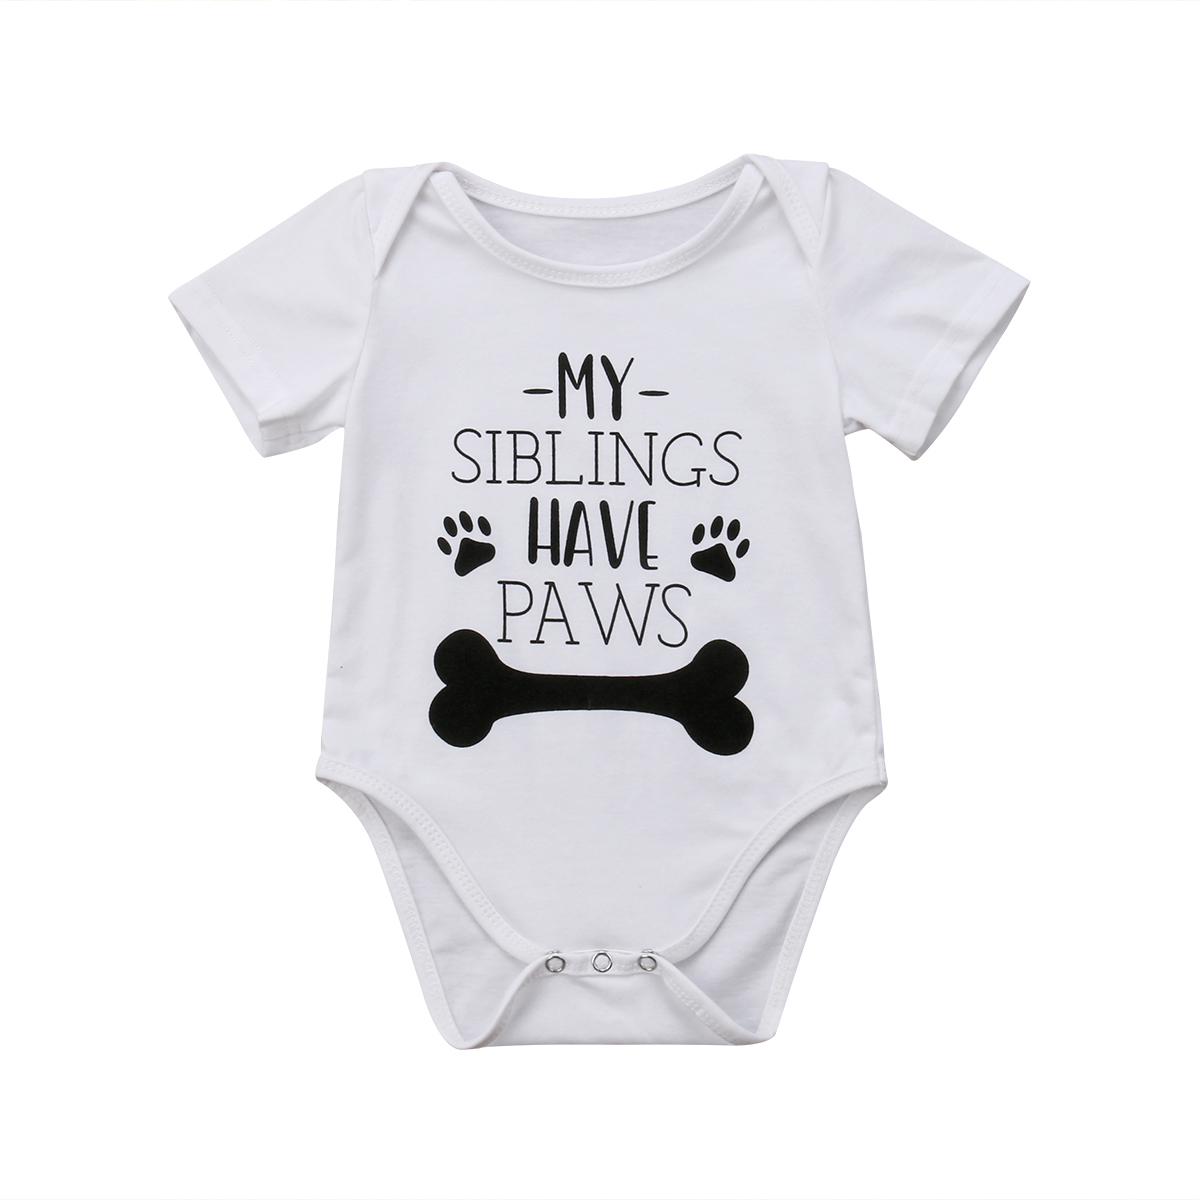 Newborn Infant Baby Boy Girls Funny Short Sleeve Bodysuit Jumpsuit Clothes Outfits Size 0-24M